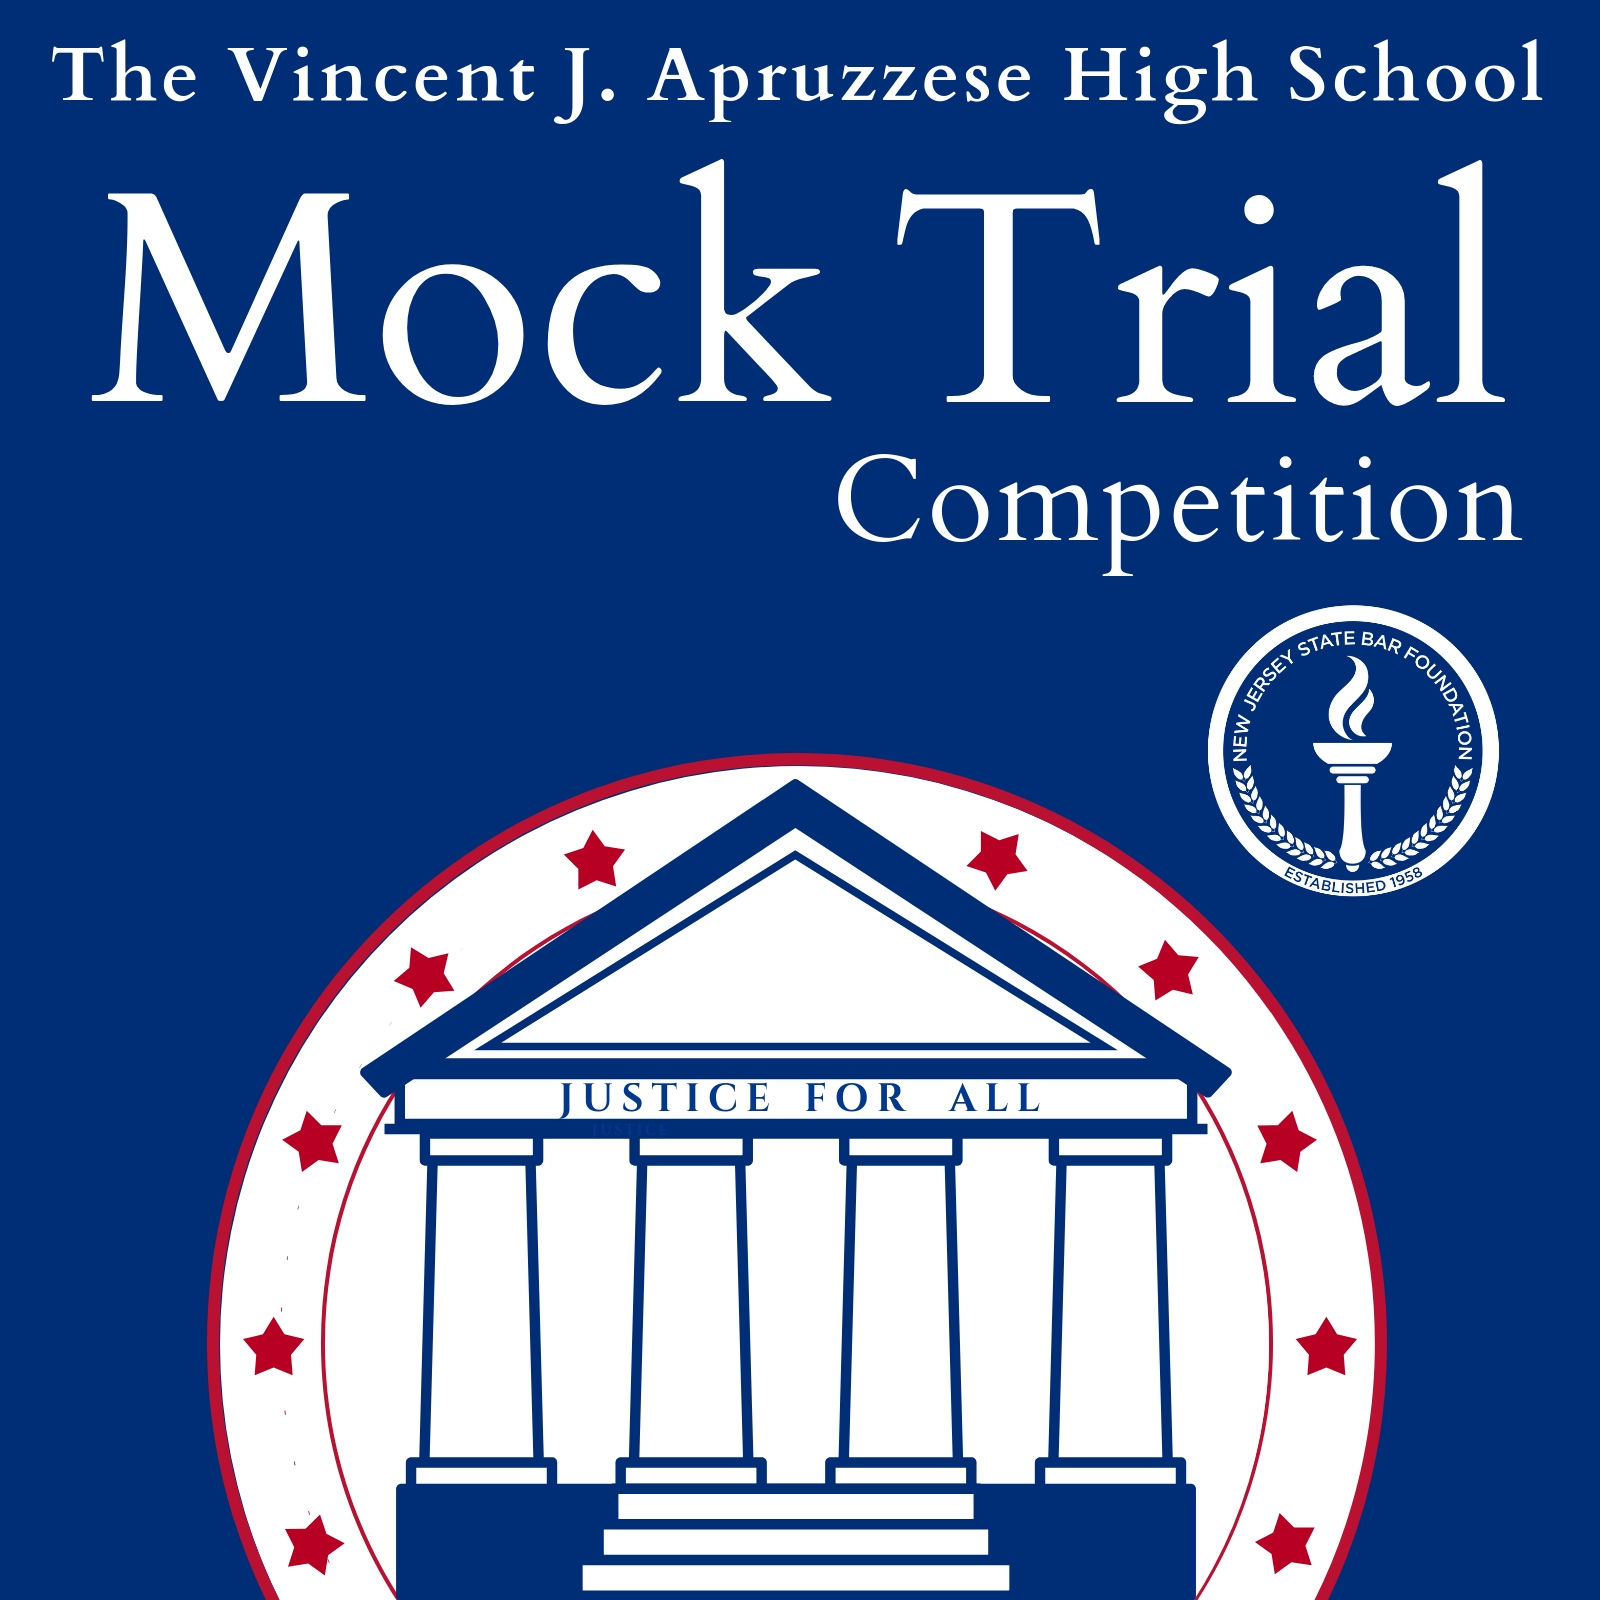 Mock Trial - New Jersey State Bar Foundation